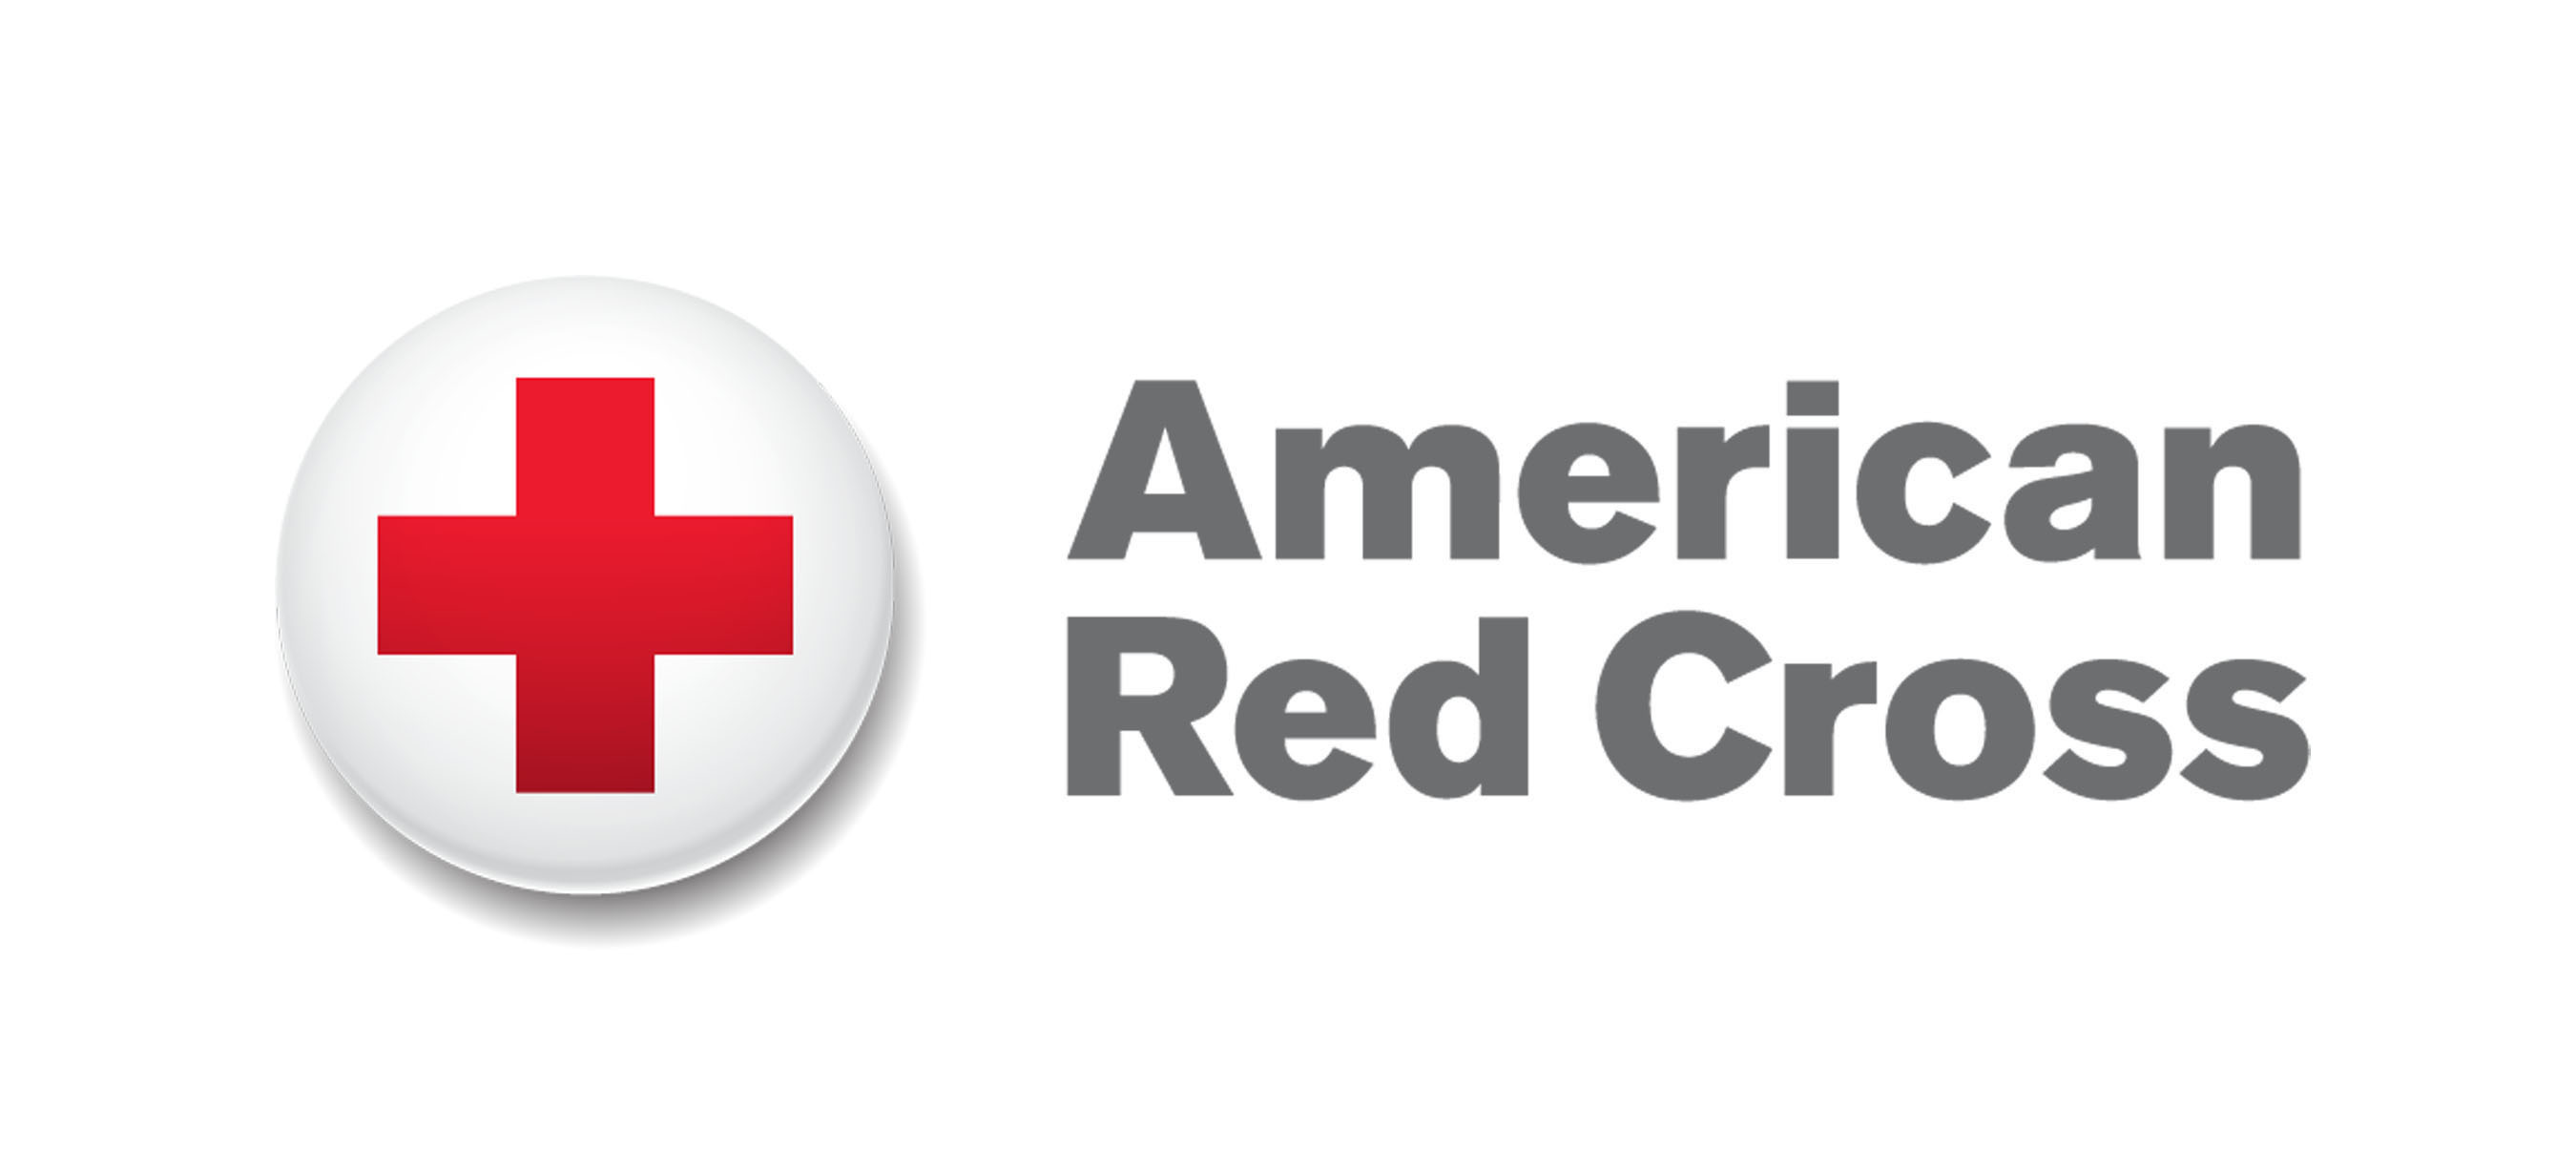 American Red Cross.